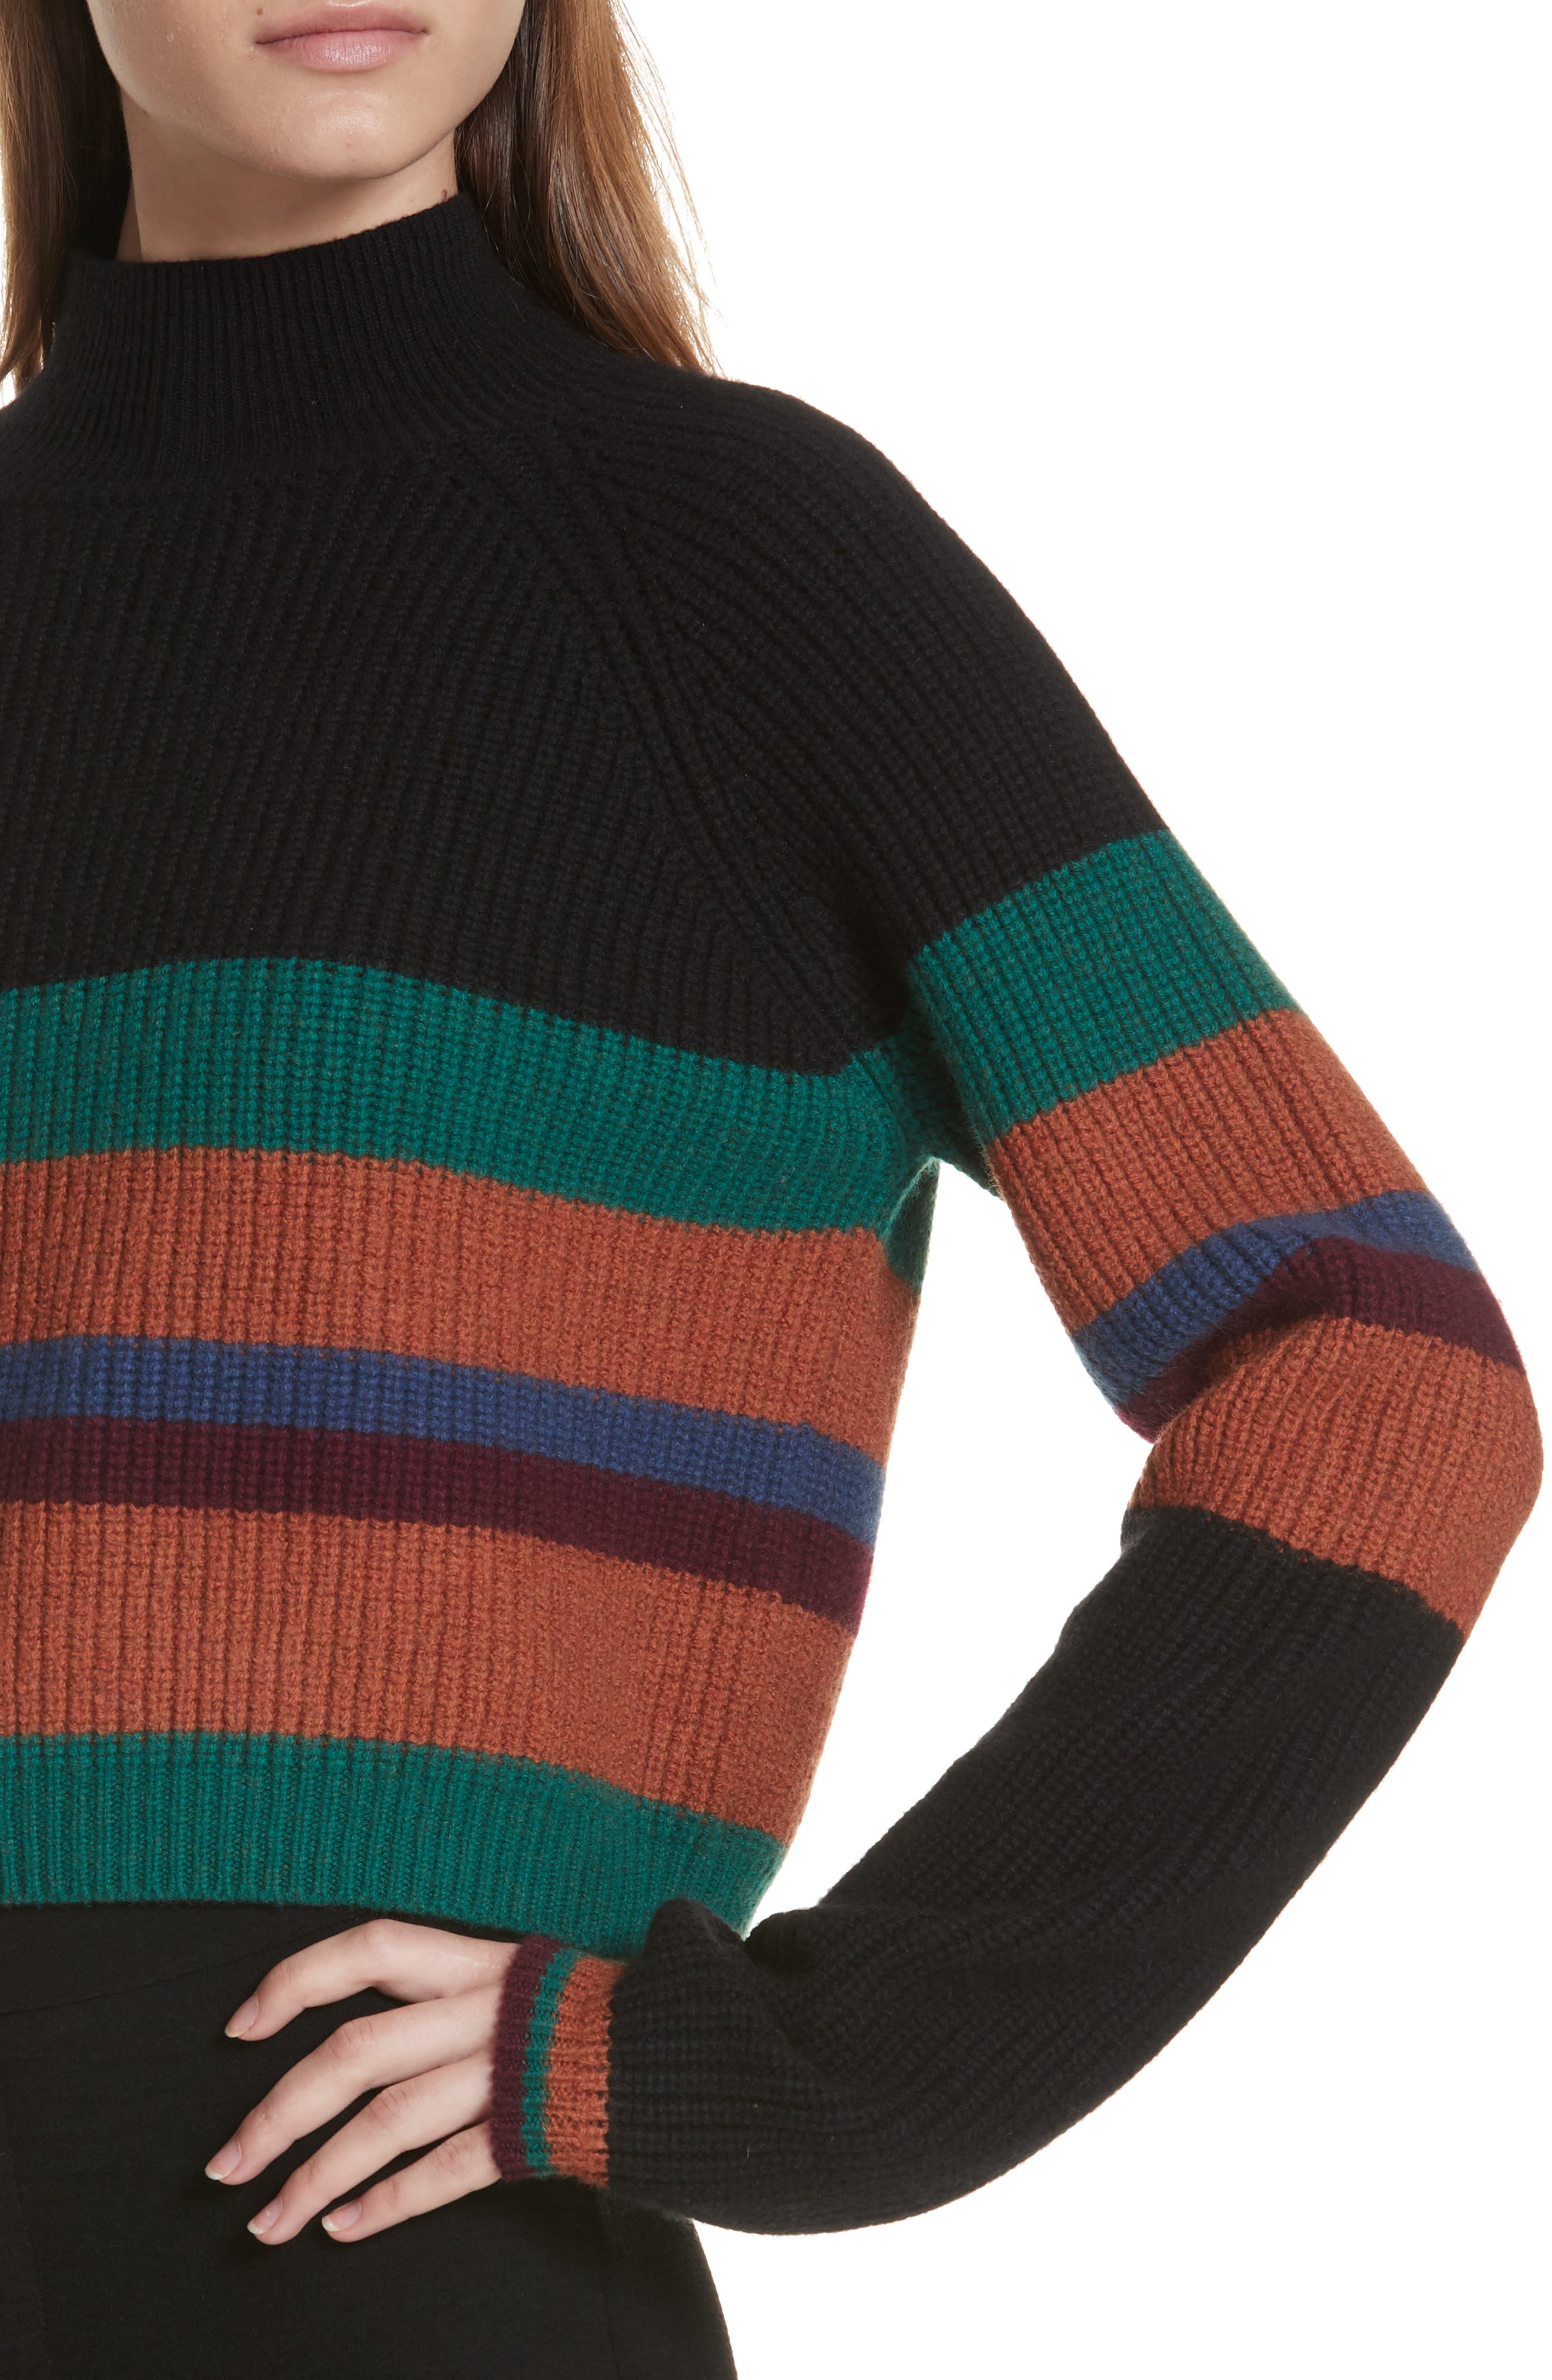 The Adam Stripe Wool & Cashmere Sweater by Cienne